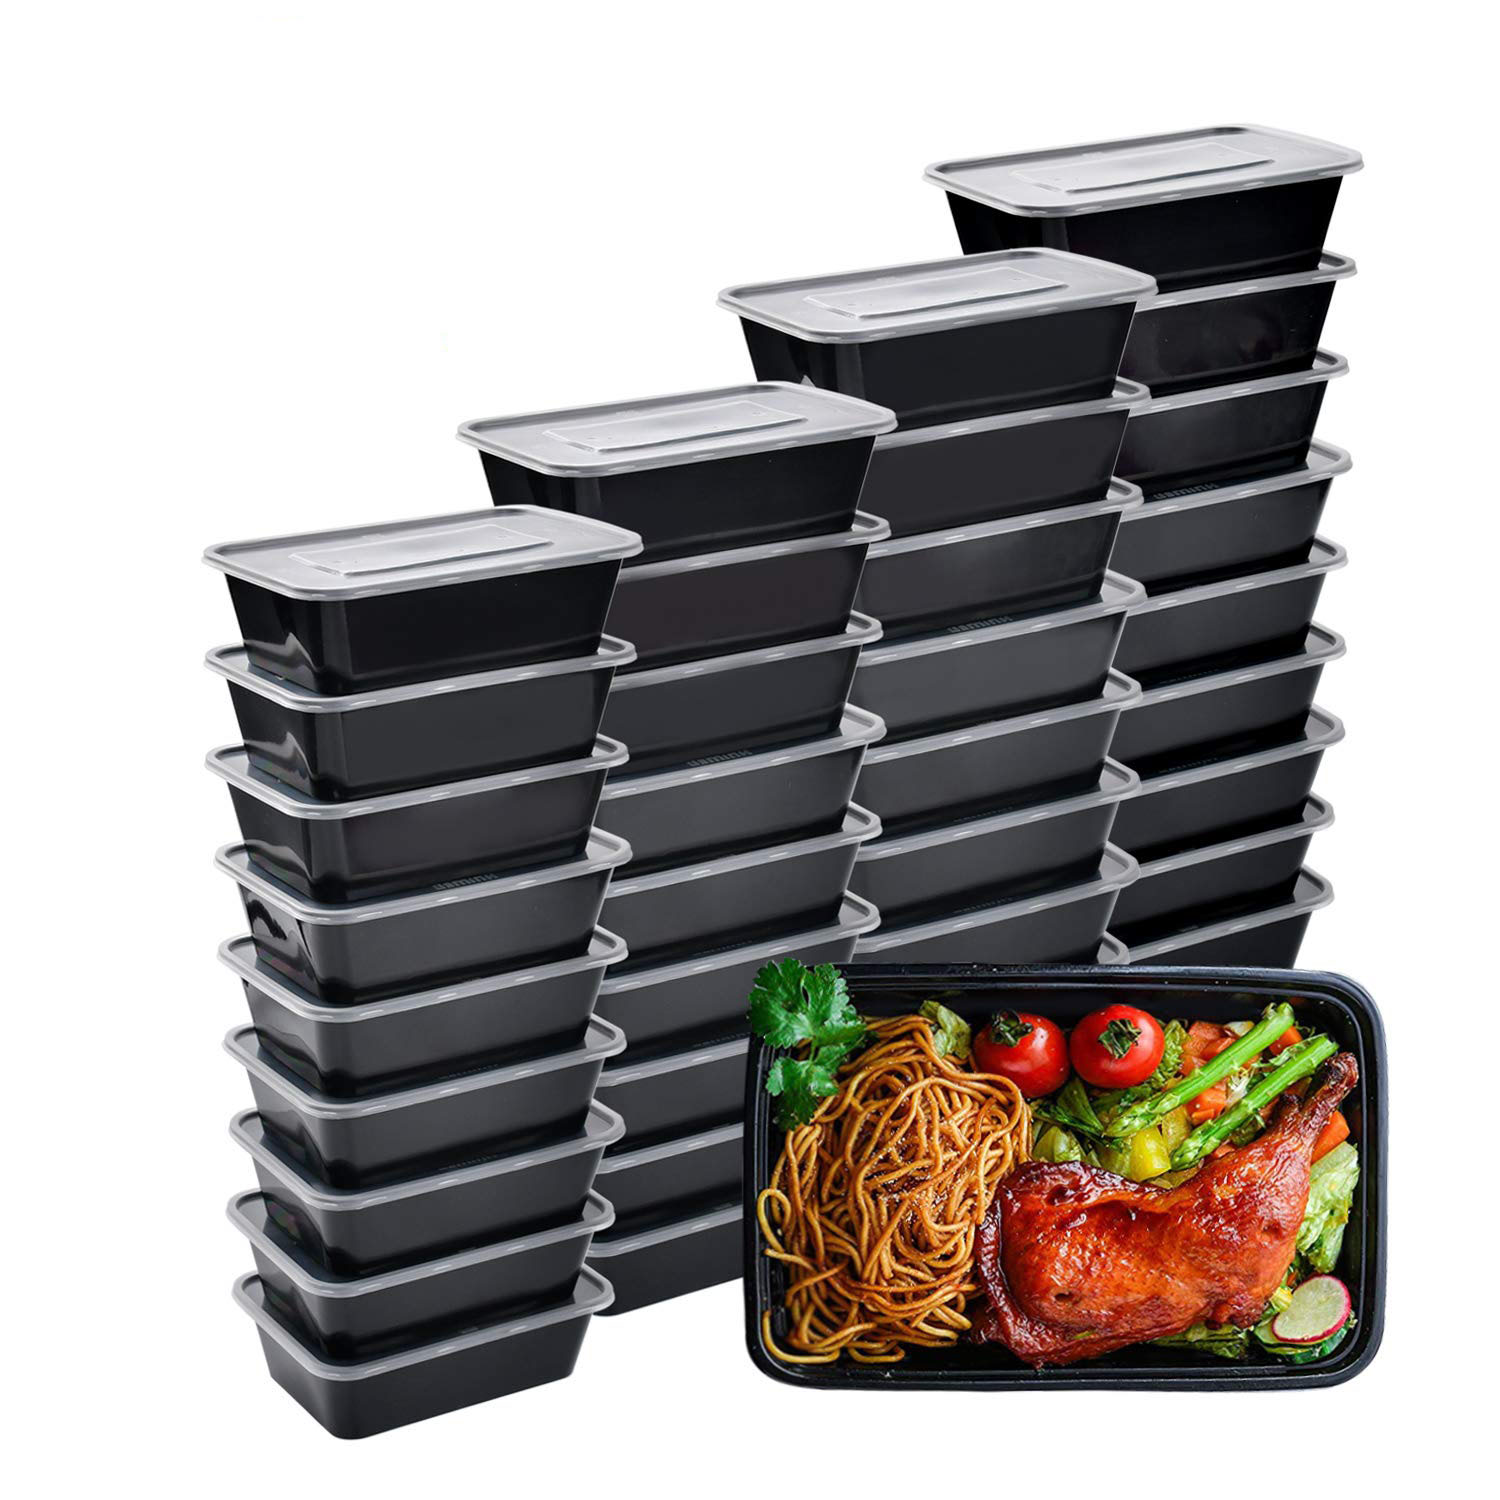 10 Pack Plastic Container Meal Prep Containers, Bento Boxes Disposable Plastic Bento Insulated Lunch Box Containers With Lid